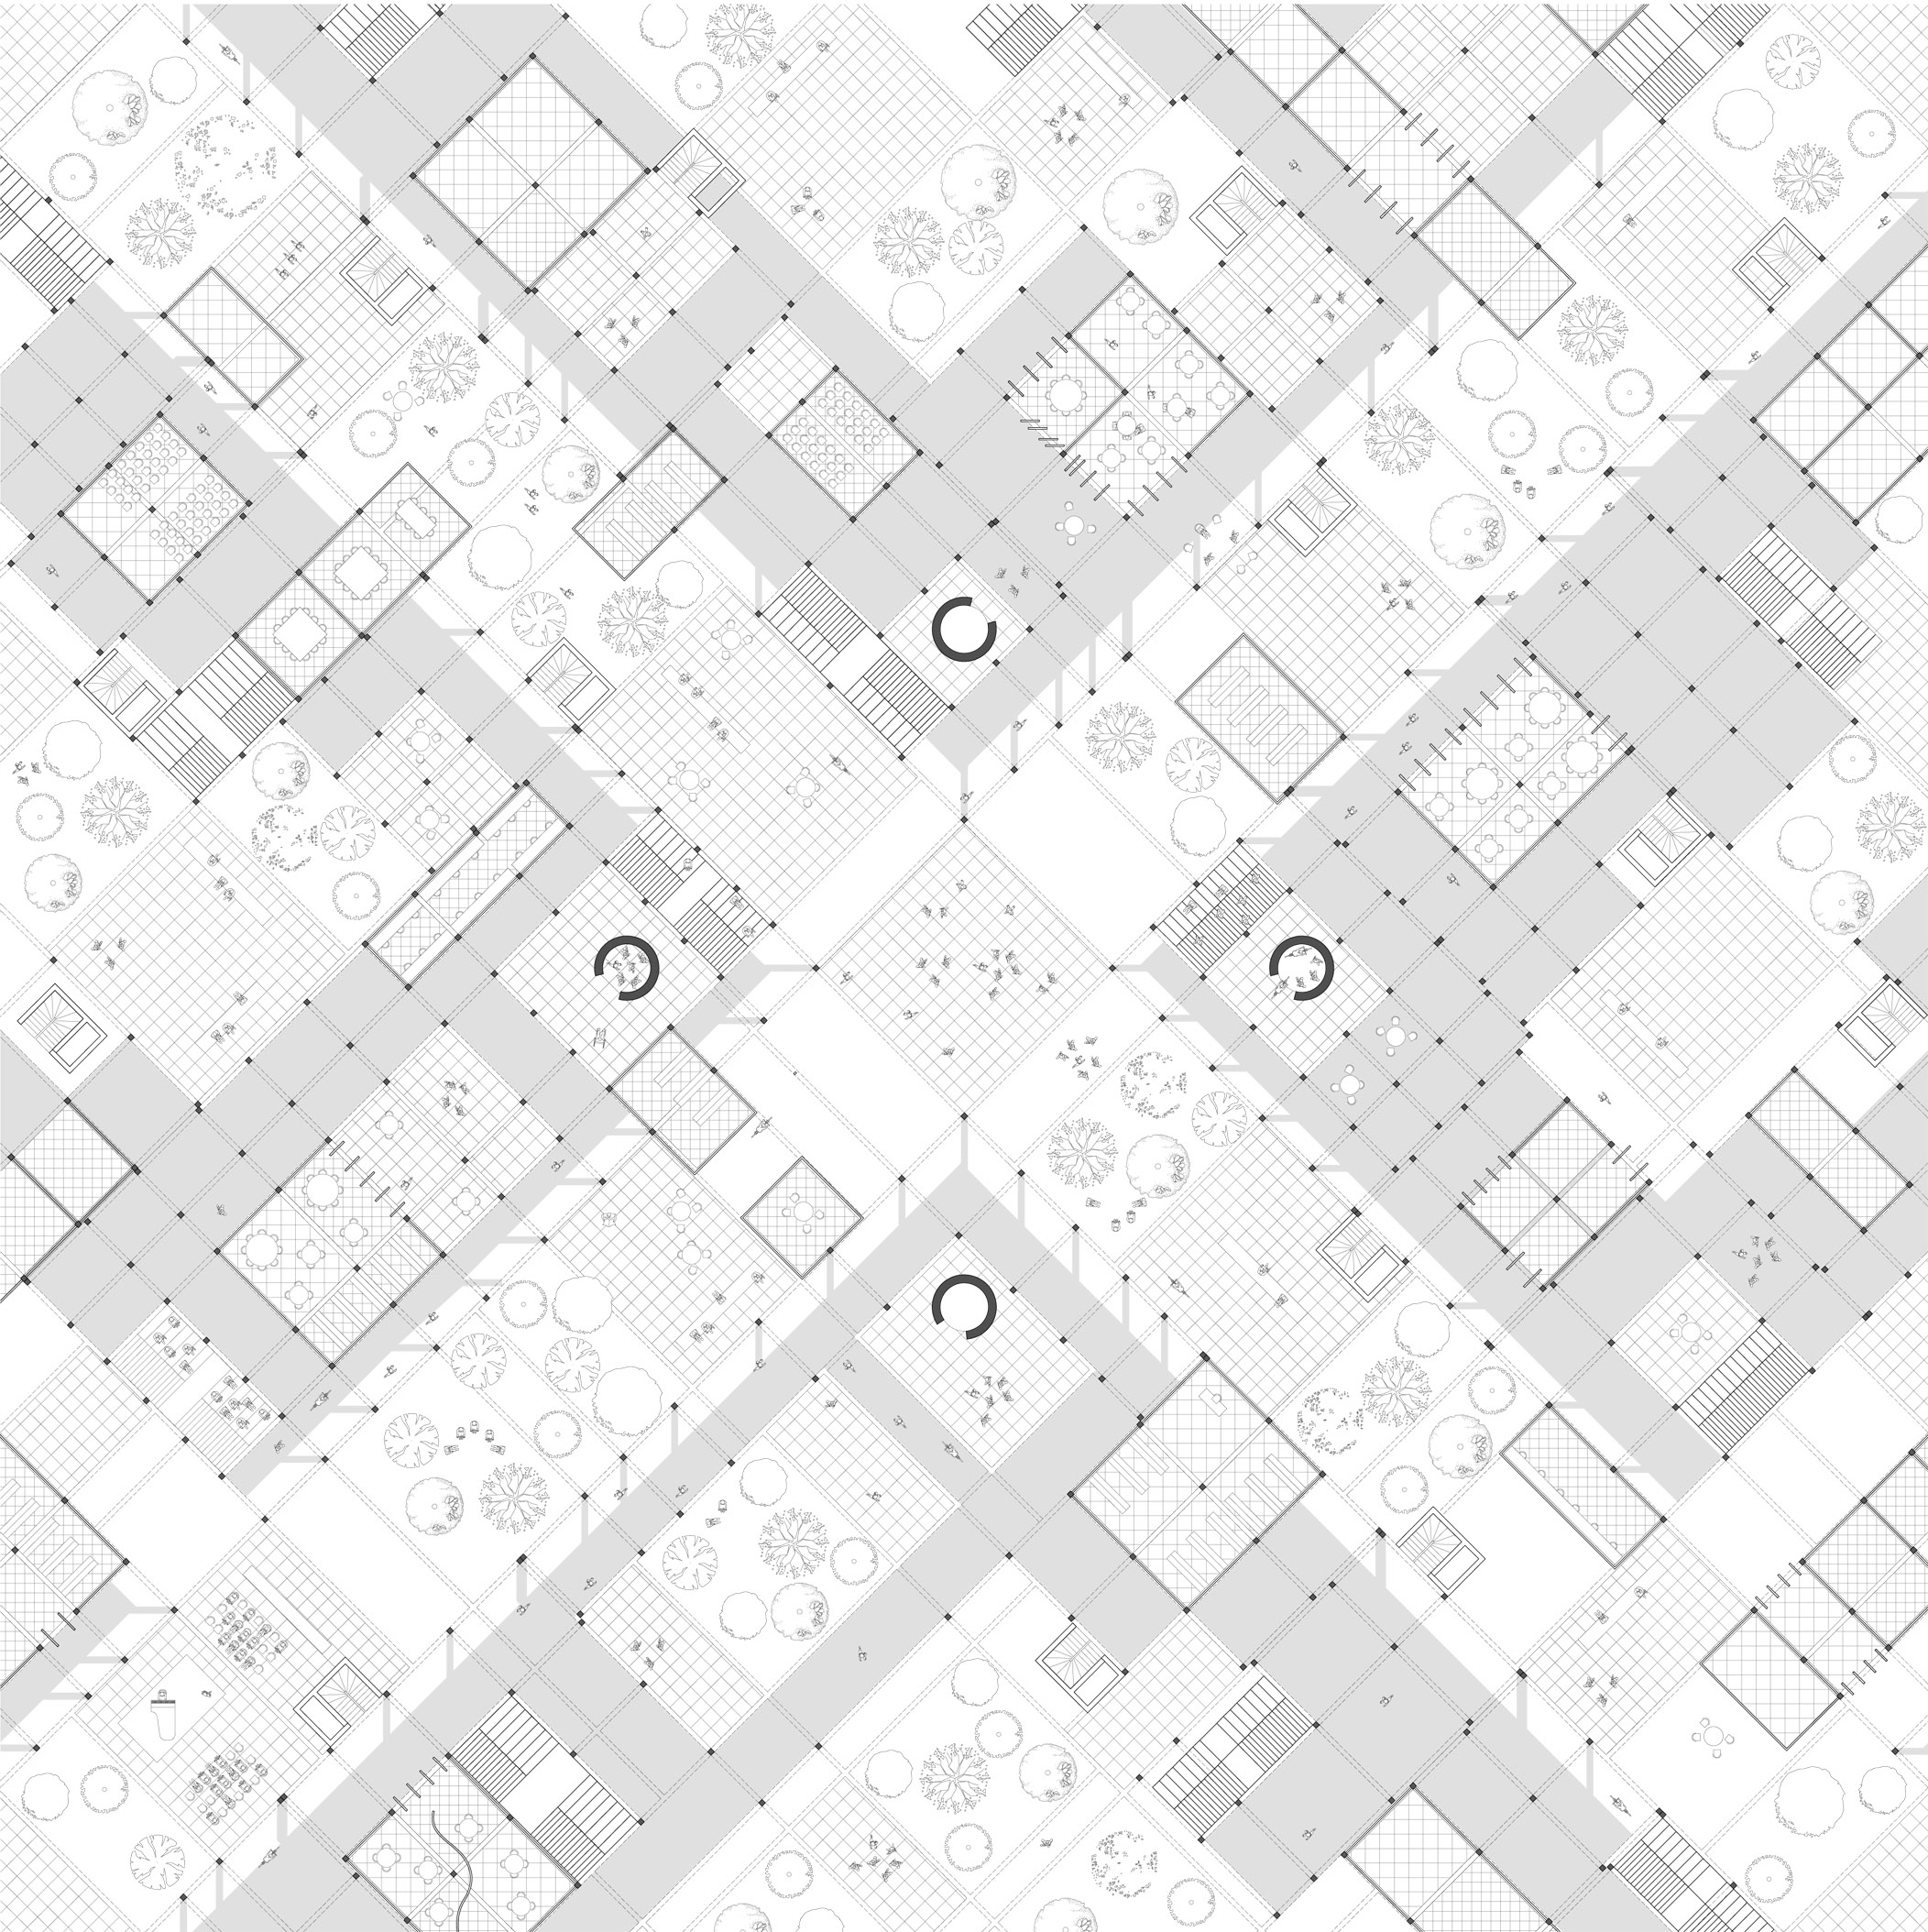 .Pedestrian Crossroad.    The condition presented is that of pedestrianized crossroad.The ground floor of the city expands in multipledirections within the continuity that the pilotis suggests.Axes of movement coexist with places of stasis whilenature is dispersed equally around the city.